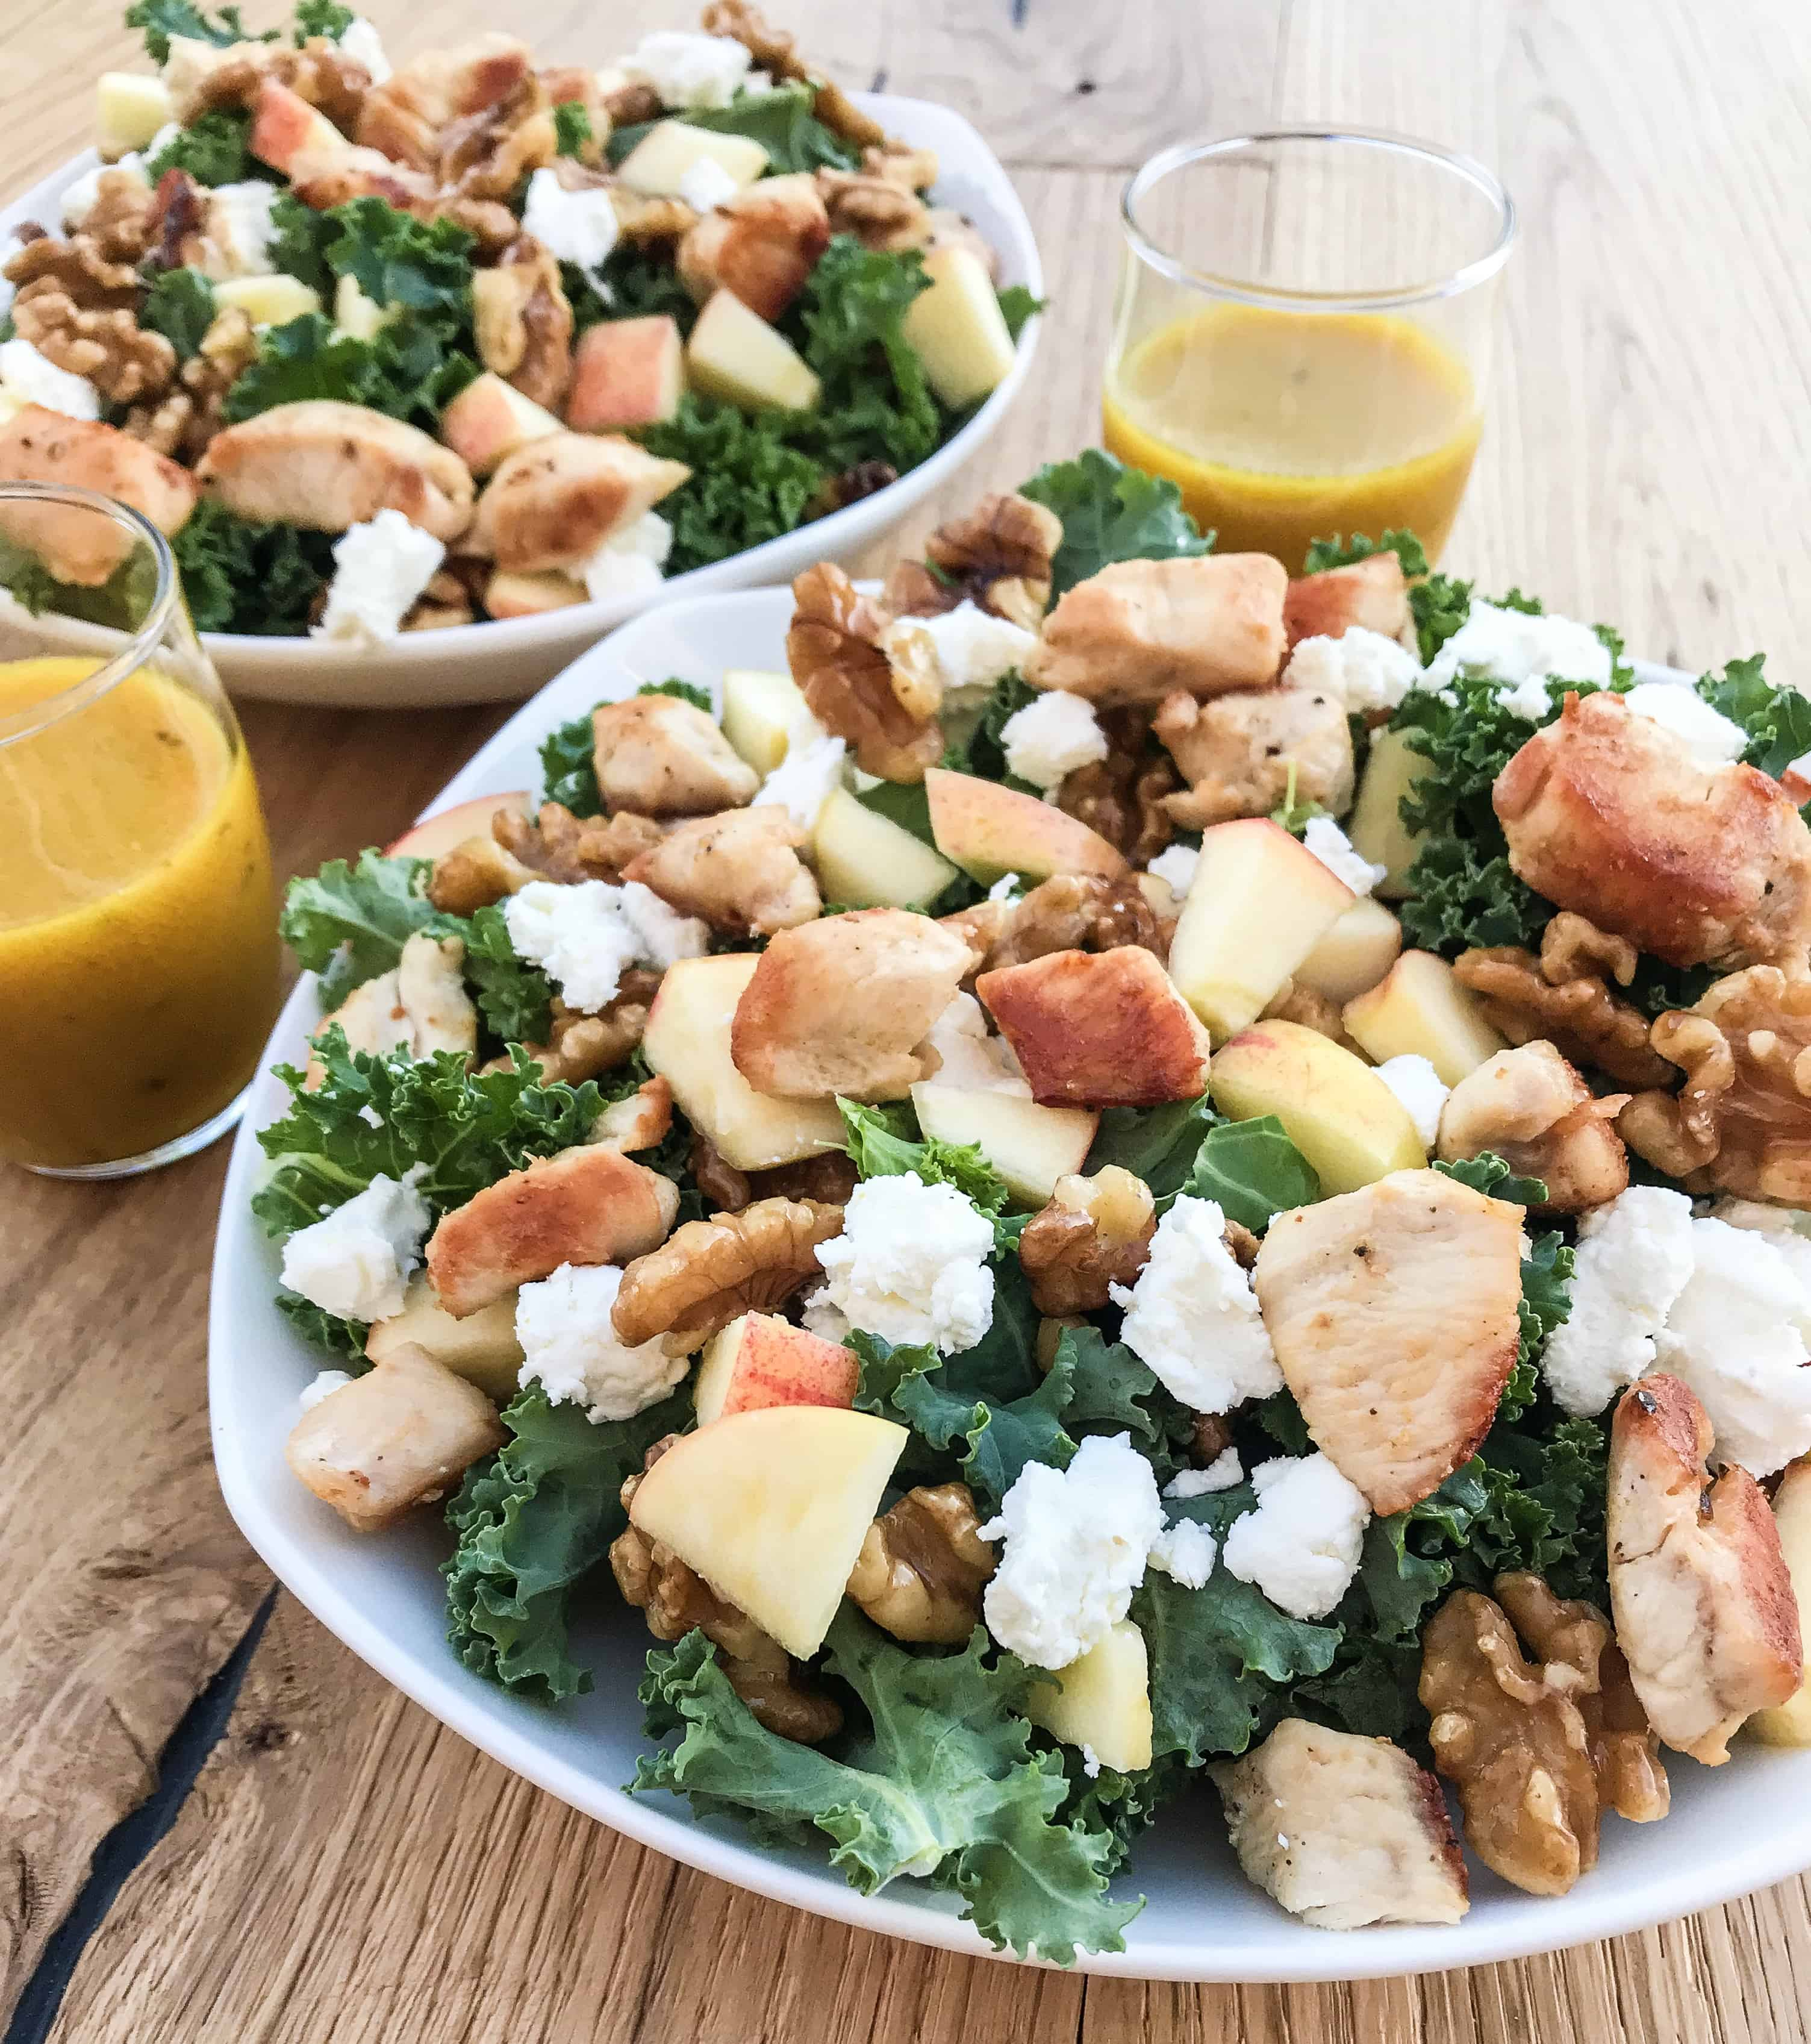 close up of kale apple salad with crumbled goat cheese, maple candied walnuts, apple, chicken, and honey mustard vinaigrette on the side